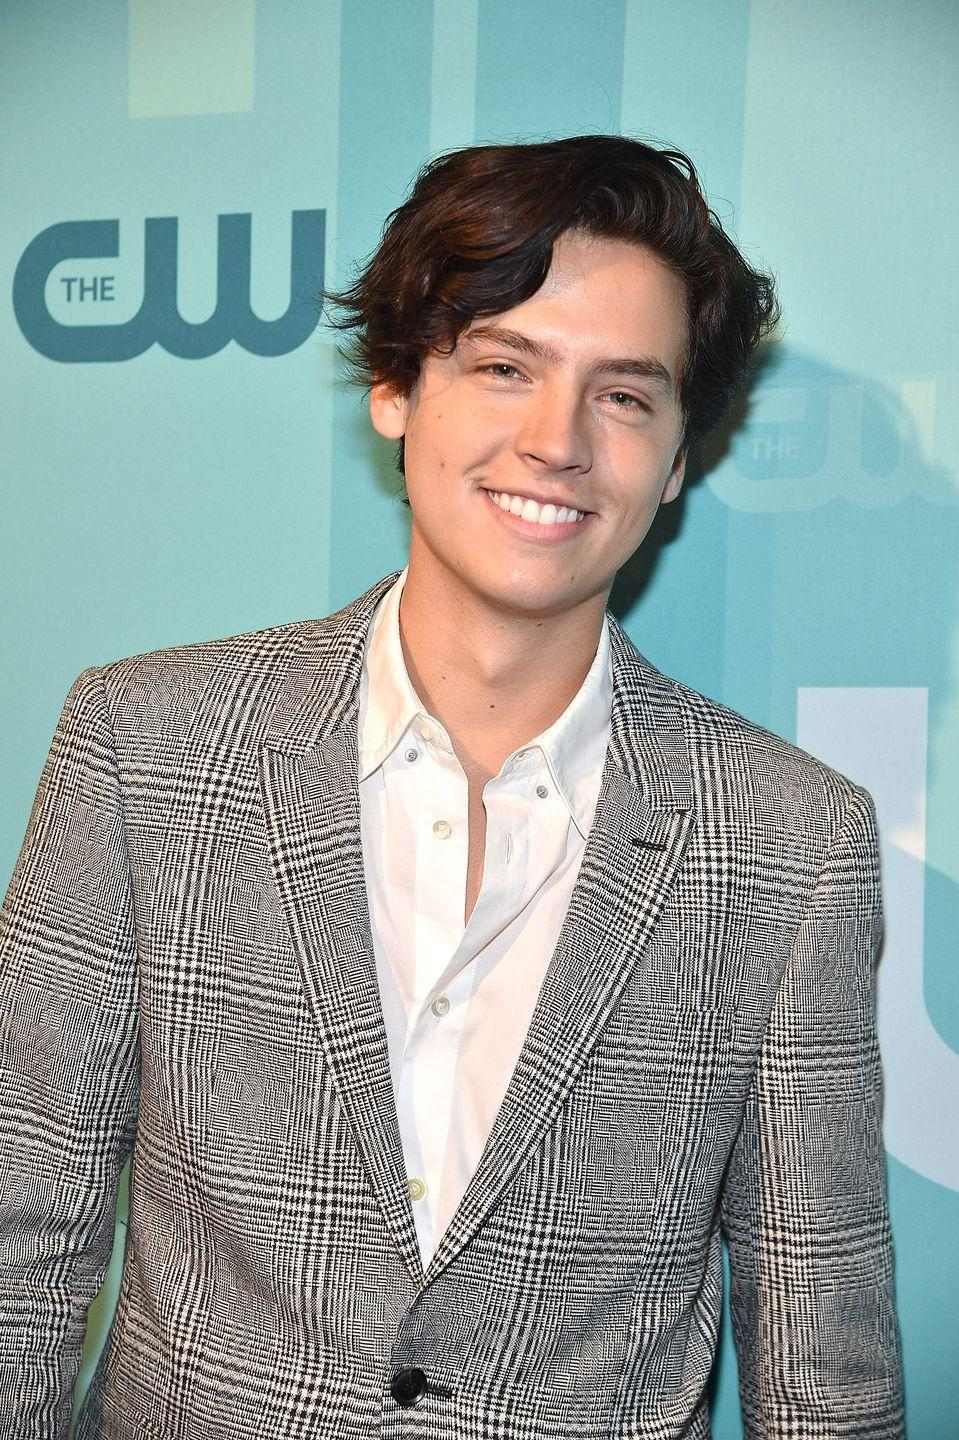 <p>After attending New York University, Sprouse made his return to the small screen in the CW's <em>Riverdale</em>. For the comic book-inspired character, Jughead Jones, Sprouse had to dye his hair dark brown. The actor has been rocking this look since 2017.</p>